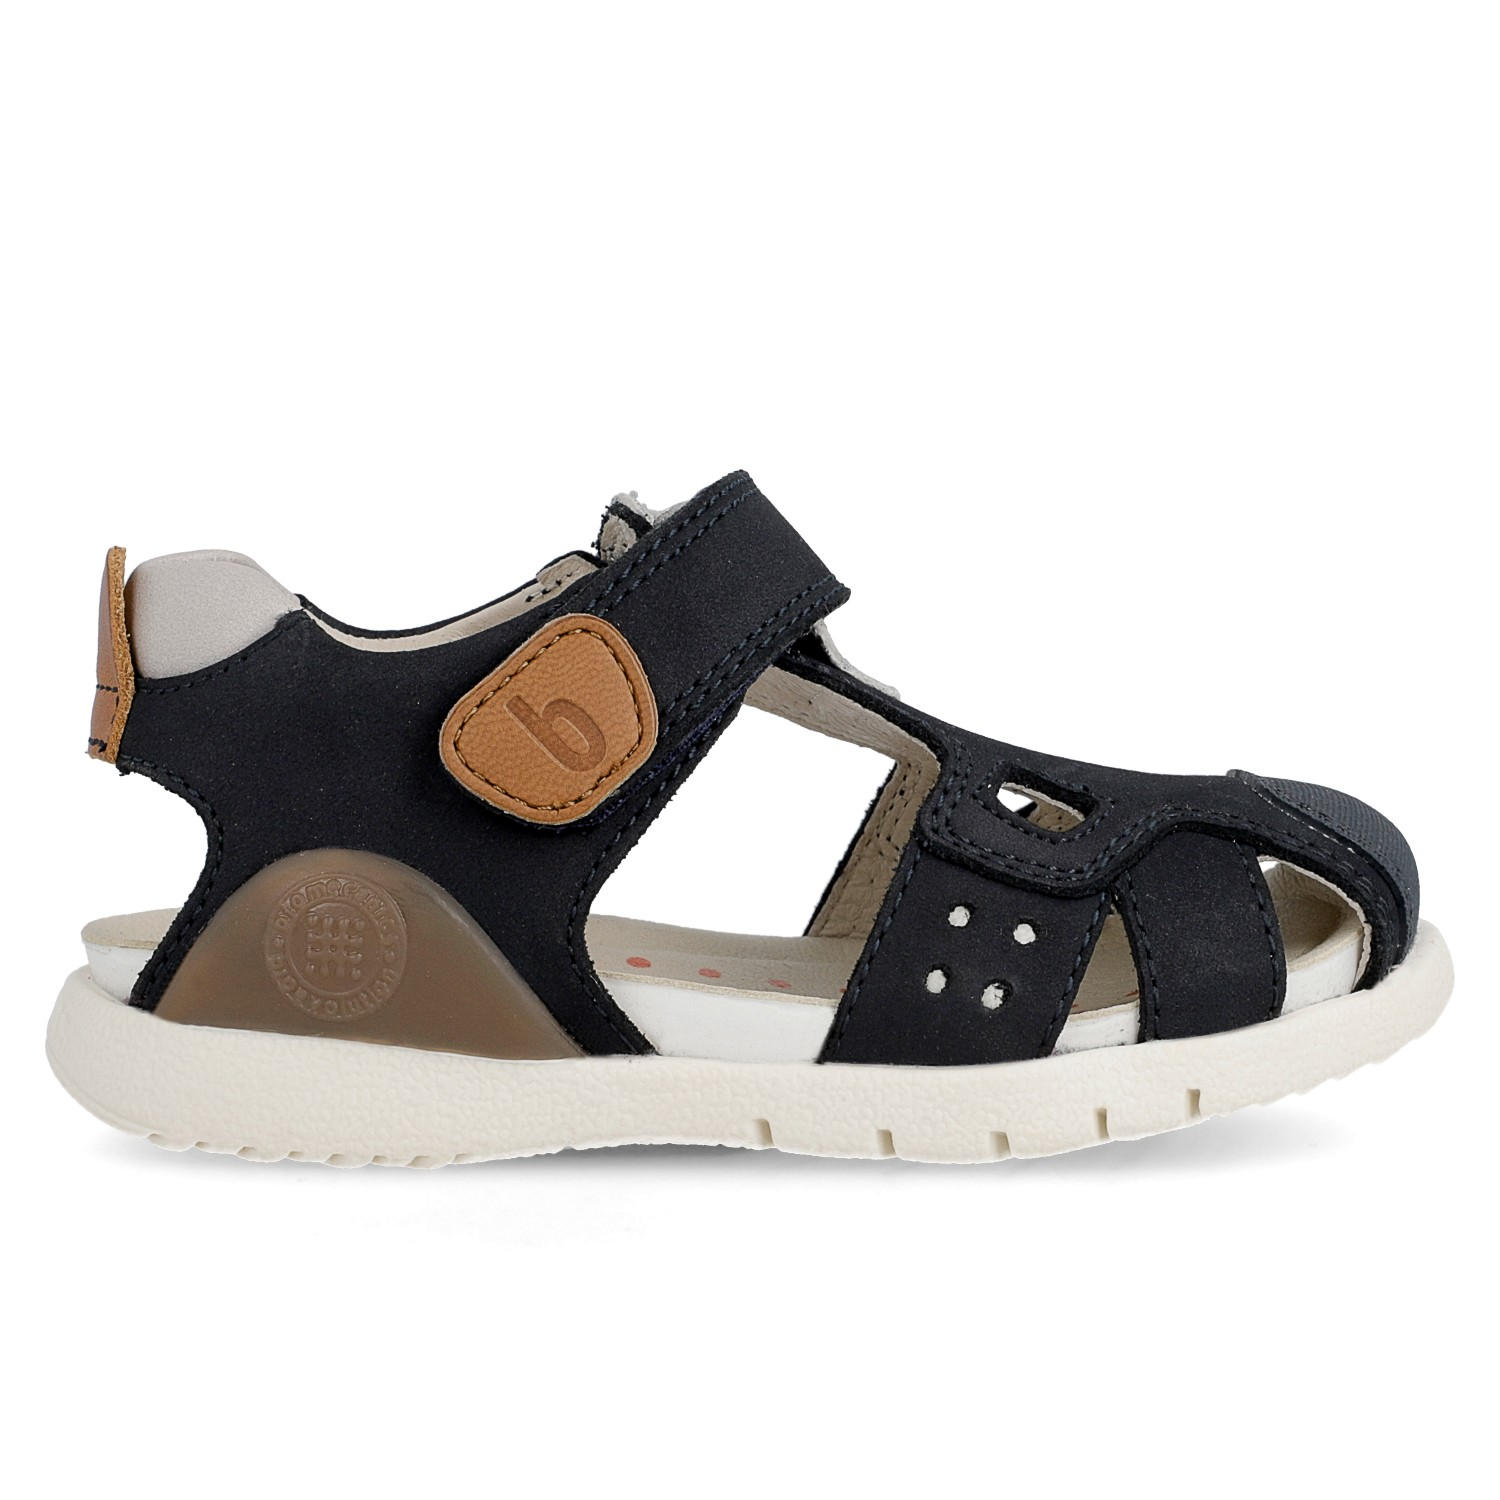 48a37e2232b6 Leather sandals for boy Gon - Tienda Online Grupo Garvalin